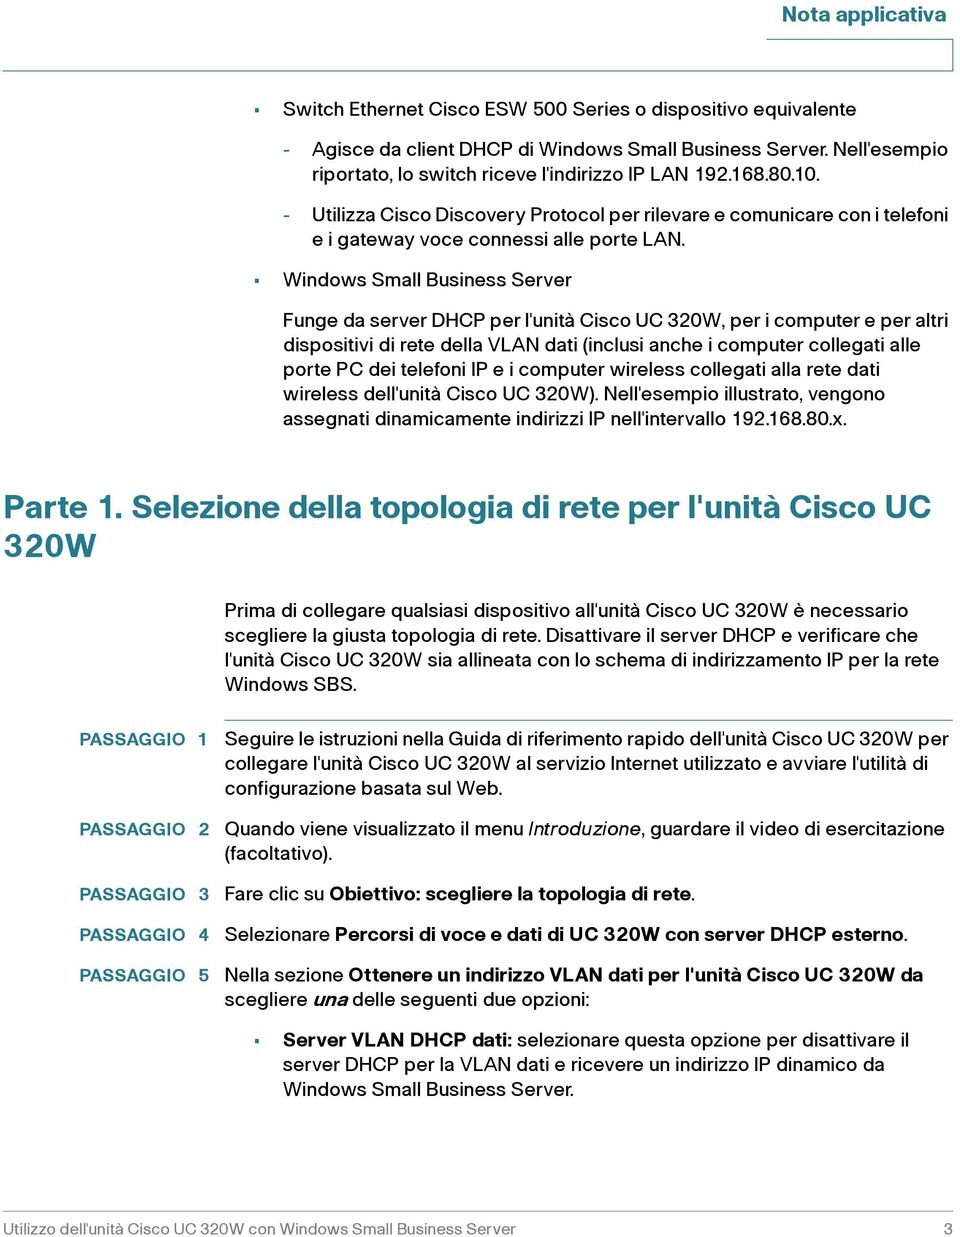 Windows Small Business Server Funge da server DHCP per l'unità Cisco UC 320W, per i computer e per altri dispositivi di rete della VLAN dati (inclusi anche i computer collegati alle porte PC dei